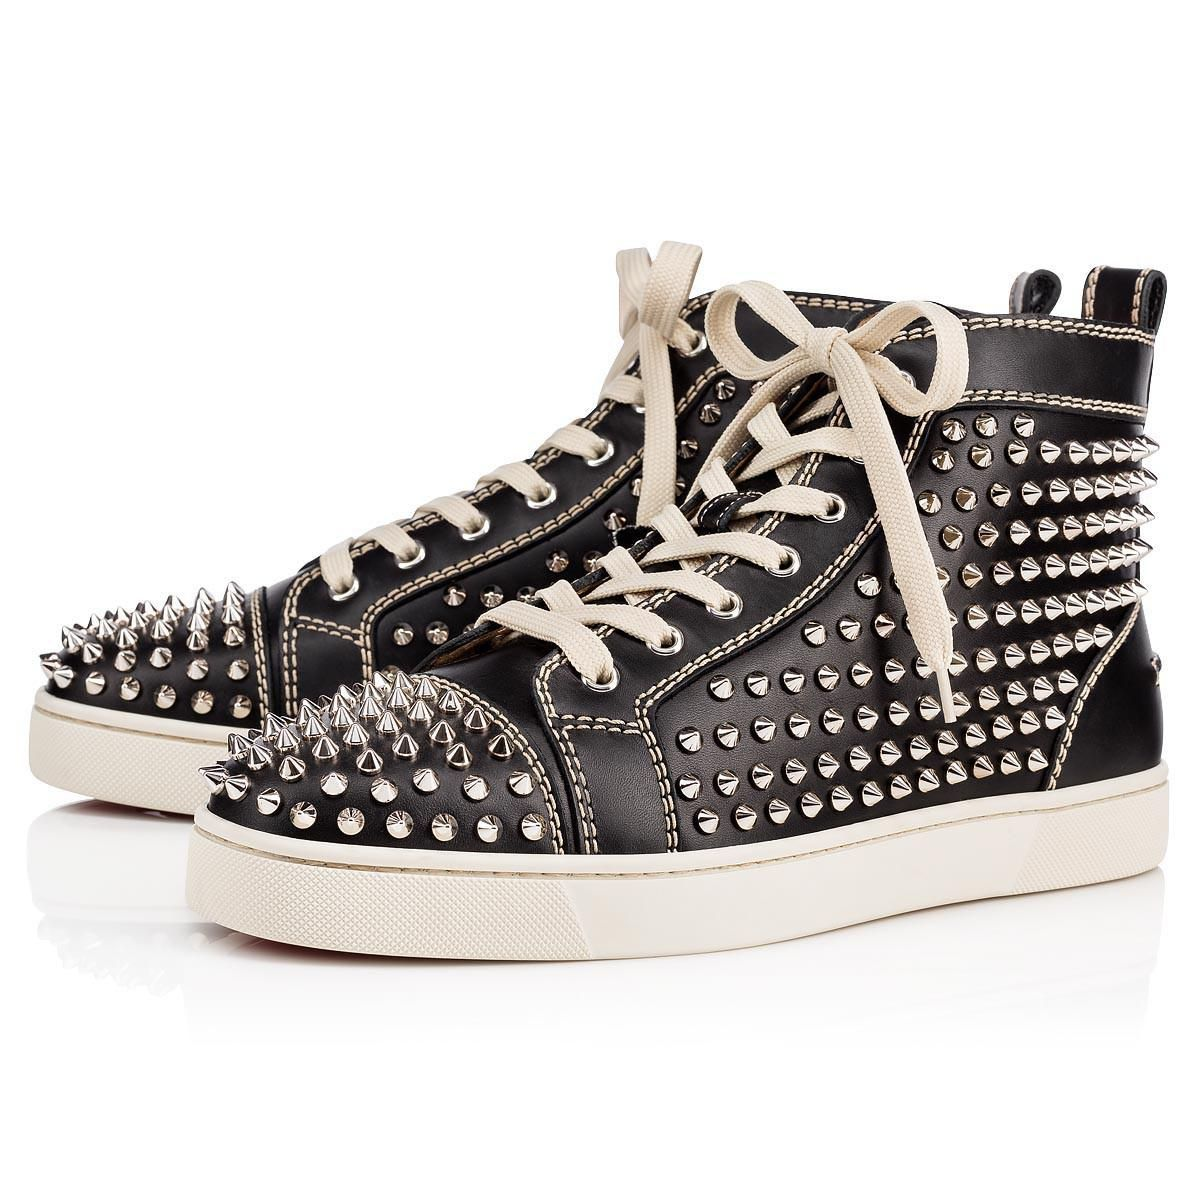 Louis Calf/spikes Black/silver Leather